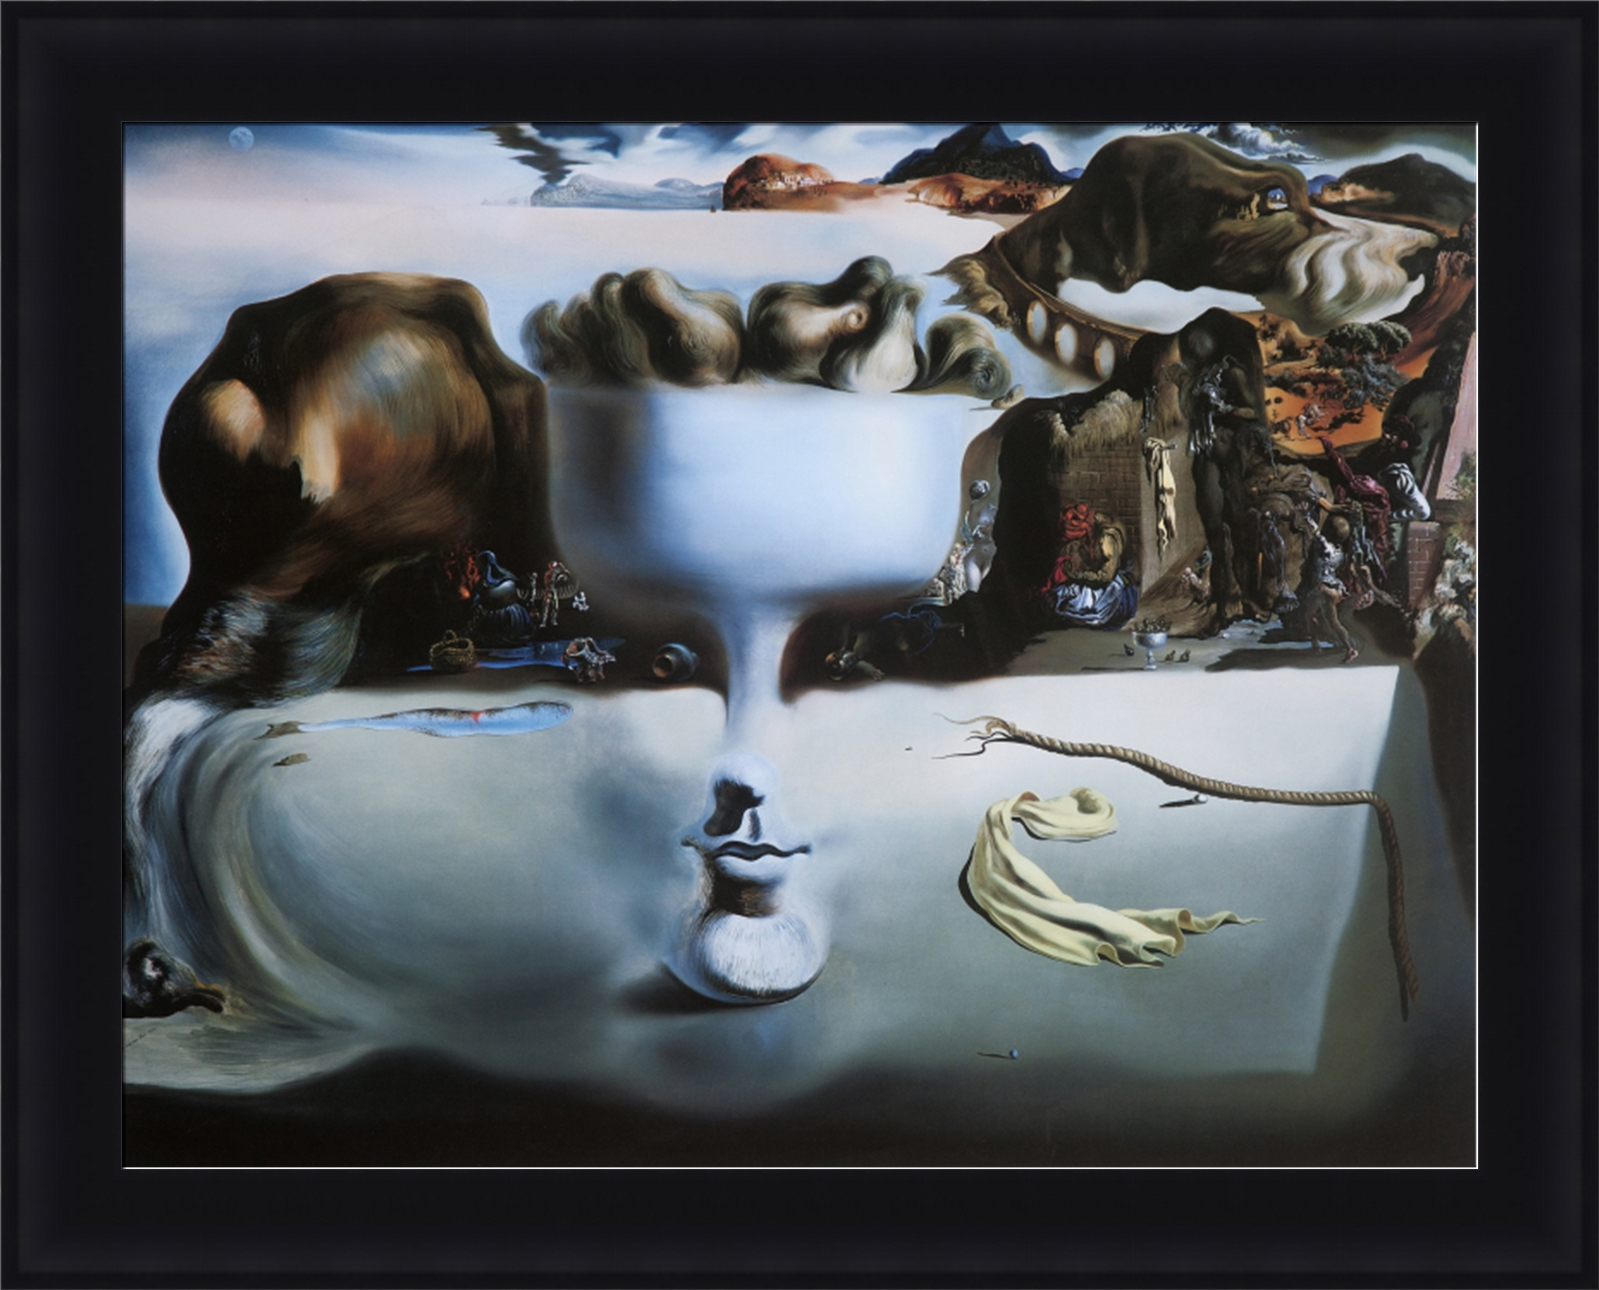 an analysis of the painting apparition of a face and a fruit dish on beach by salvador dali At one glance the spectator sees a desolate beach at another a face at another a footed dish filled with pears and again a profile of a dog these im.